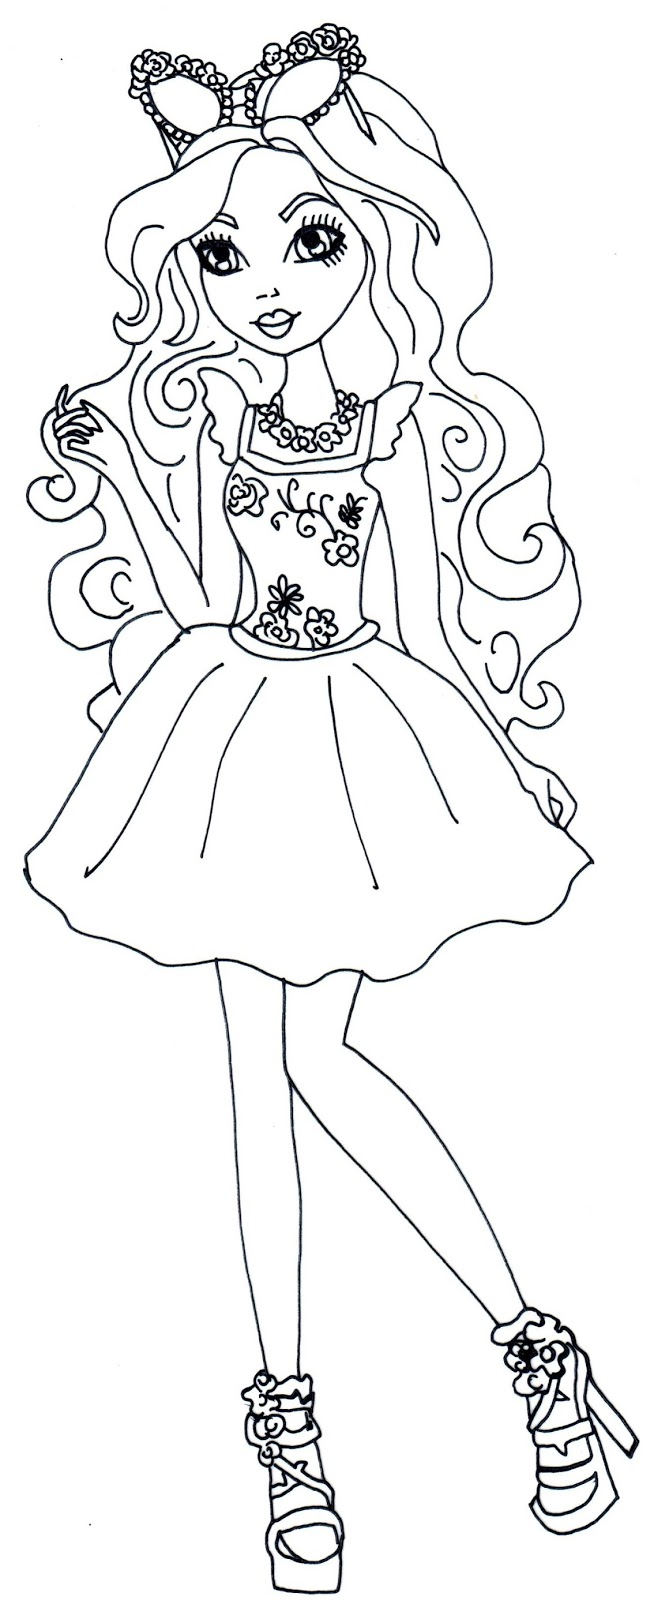 Free Printable Ever After High Coloring Pages: Lizzie Hearts ... | 1600x654